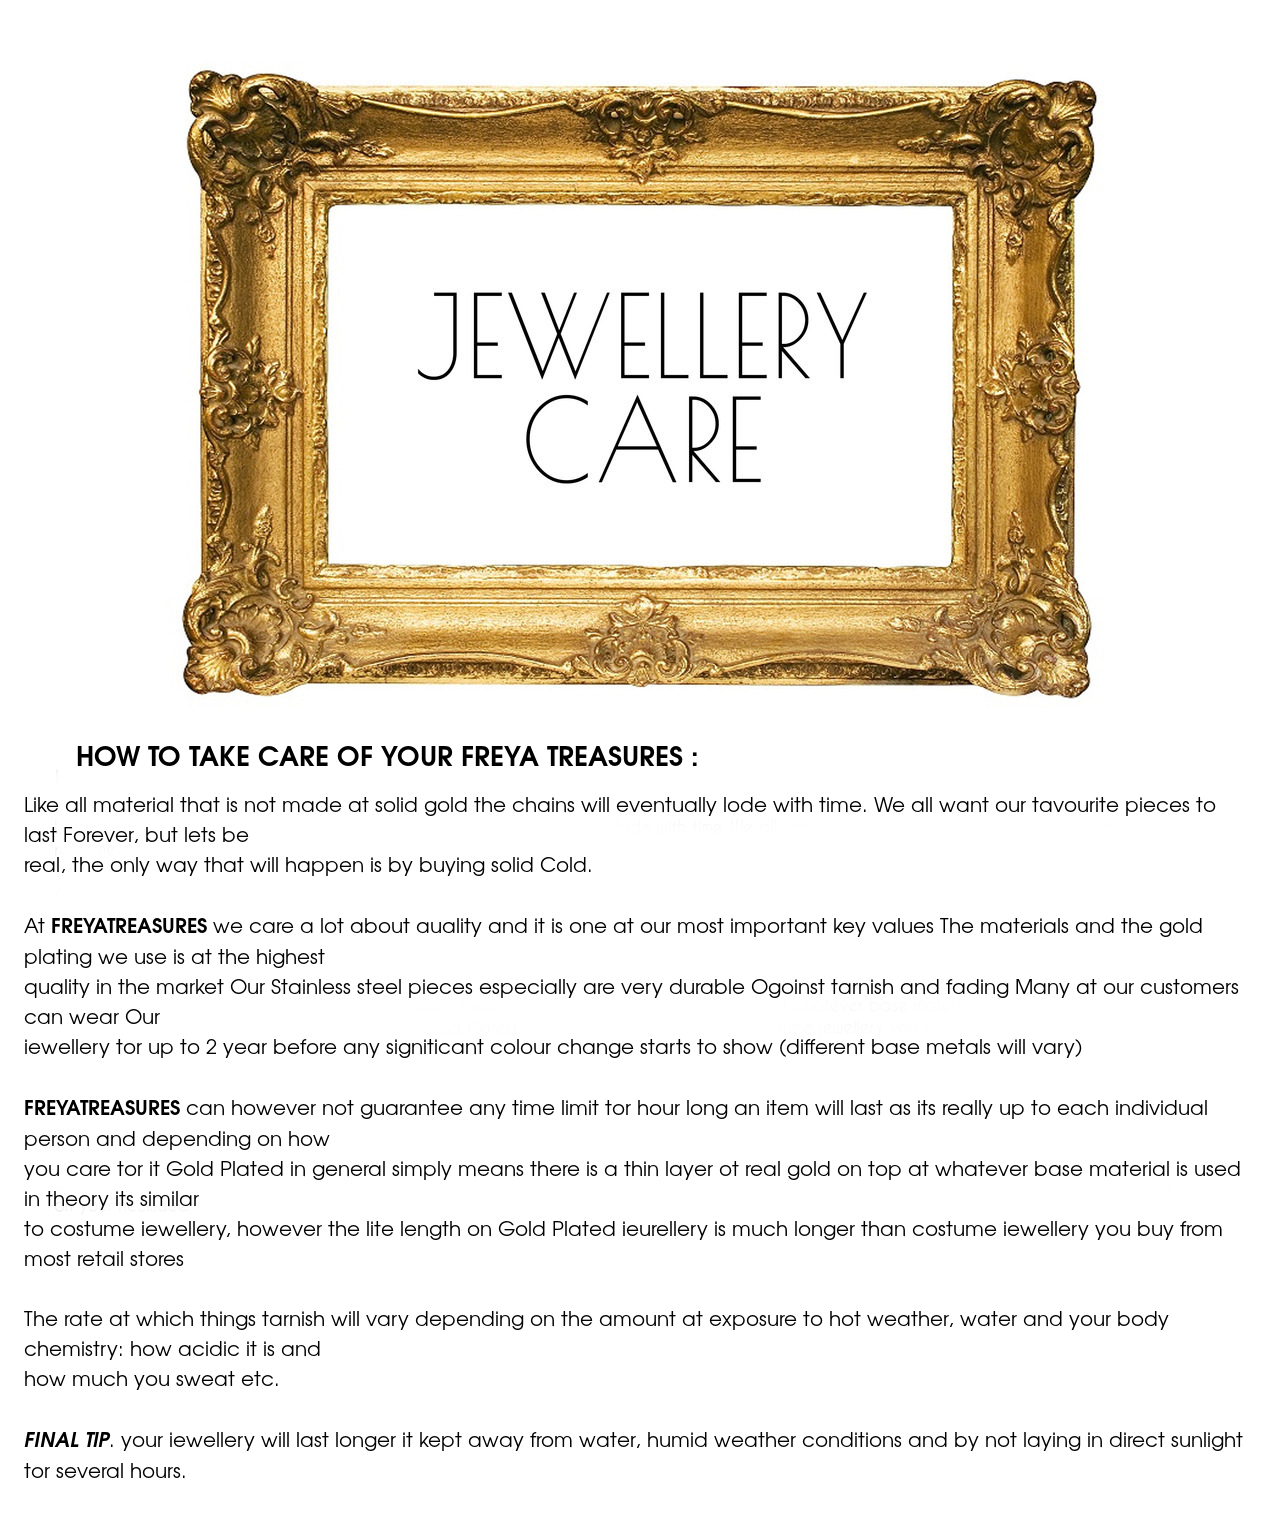 Jewelry care , freya treasures , how to take cae of you pieces of jewelry